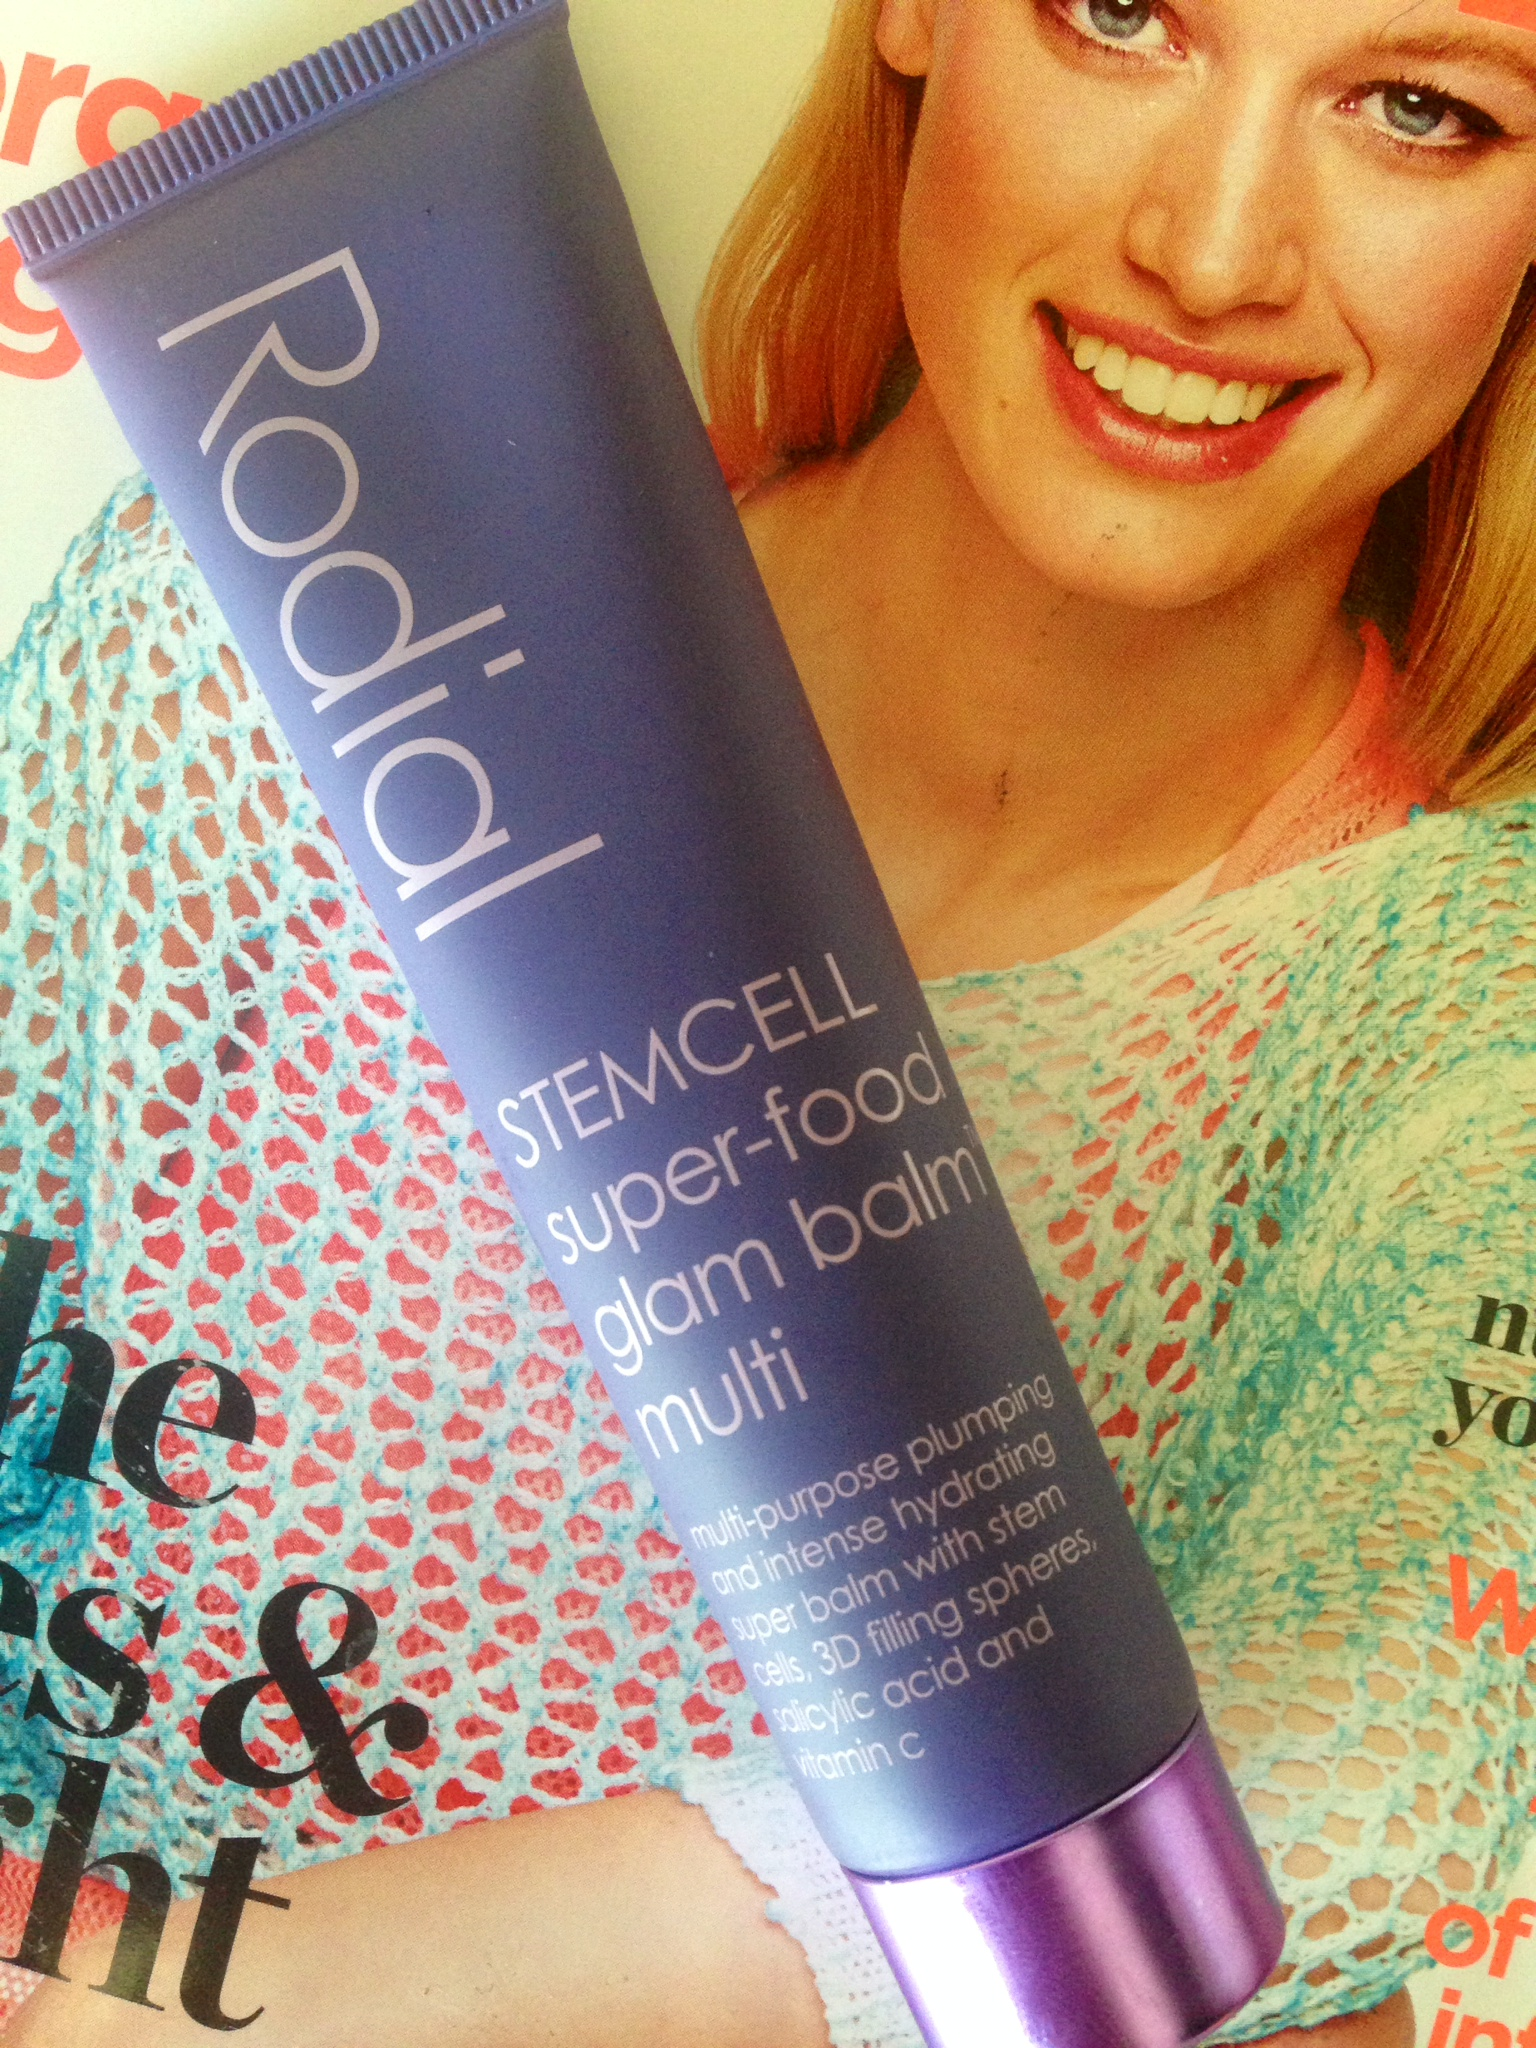 Rodial-Stemcell-Super-food-glam-balm